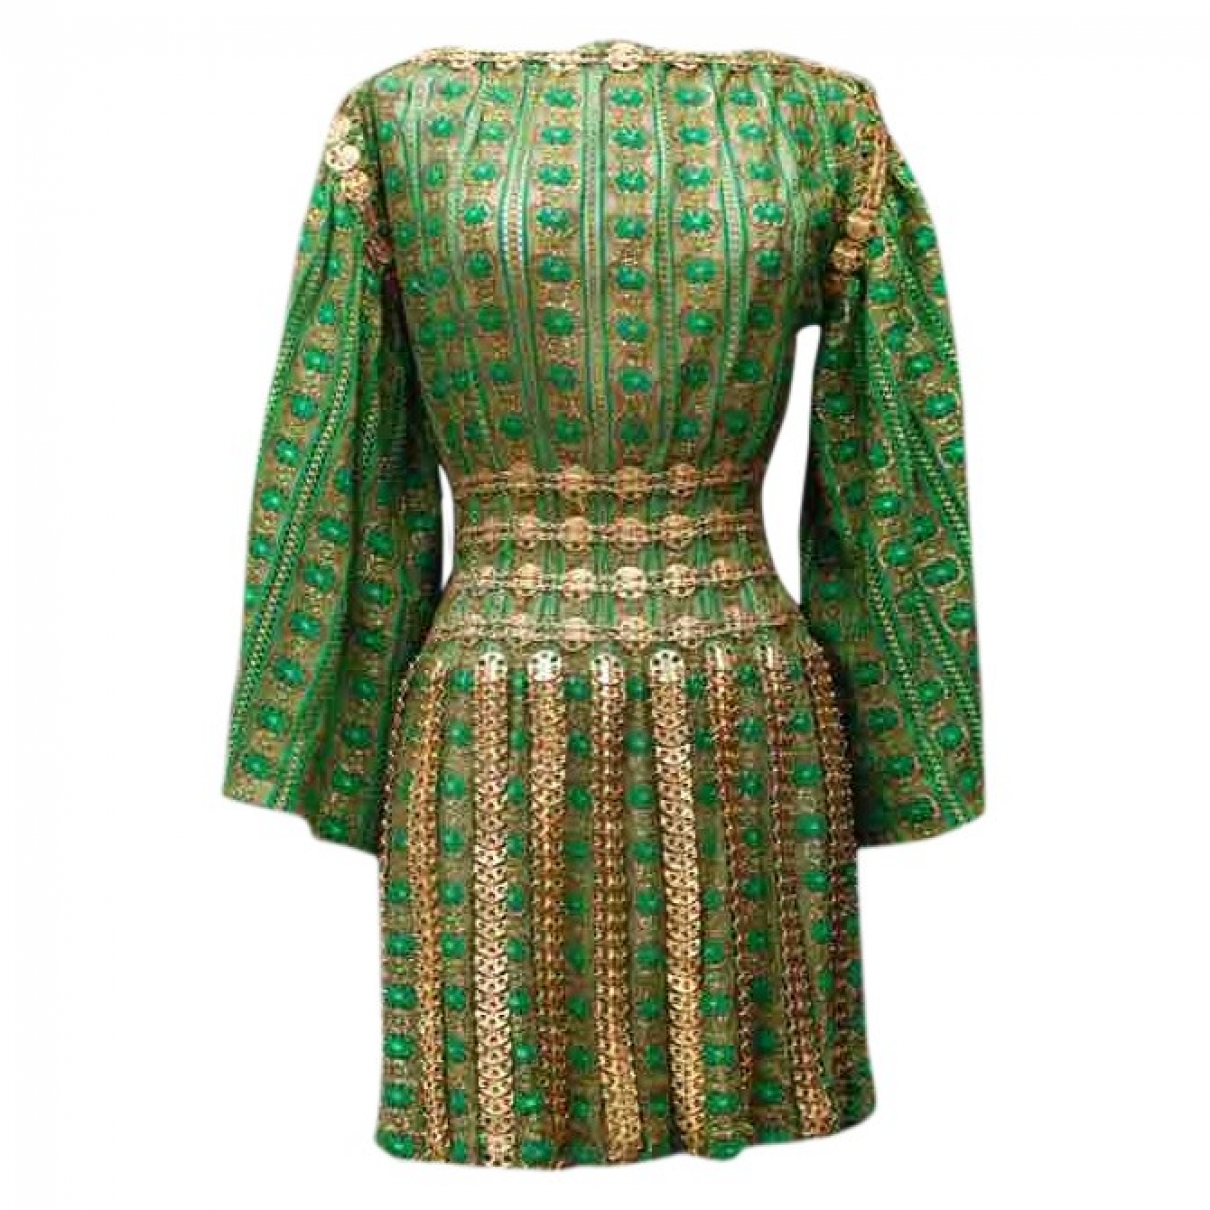 Paco Rabanne \N Green Lace dress for Women 36 FR